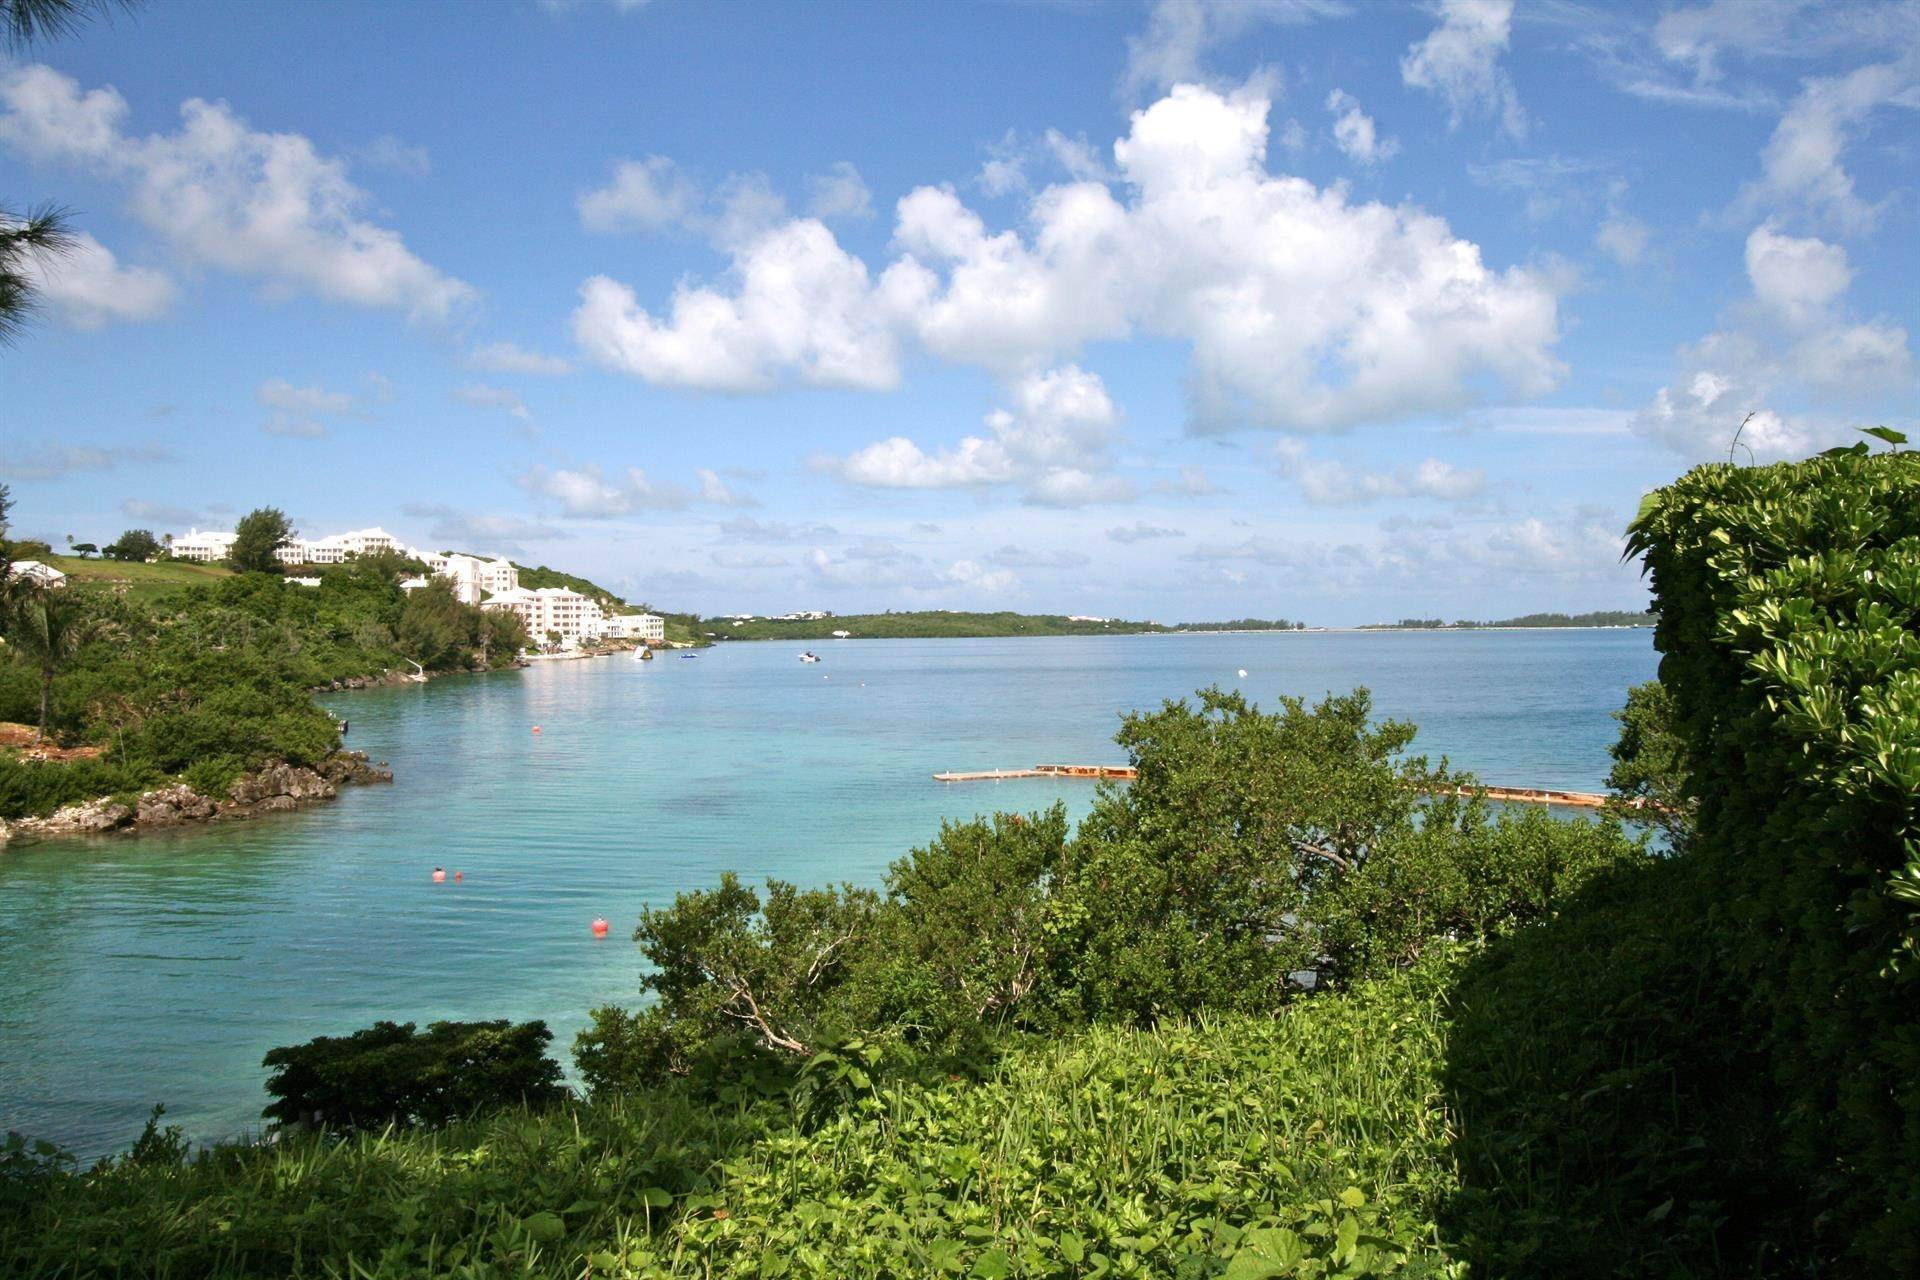 17. Propiedad con frente por un Venta en At Last in Tucker's Town At Last in Tucker's Town, ,Bermuda – Sinclair Realty